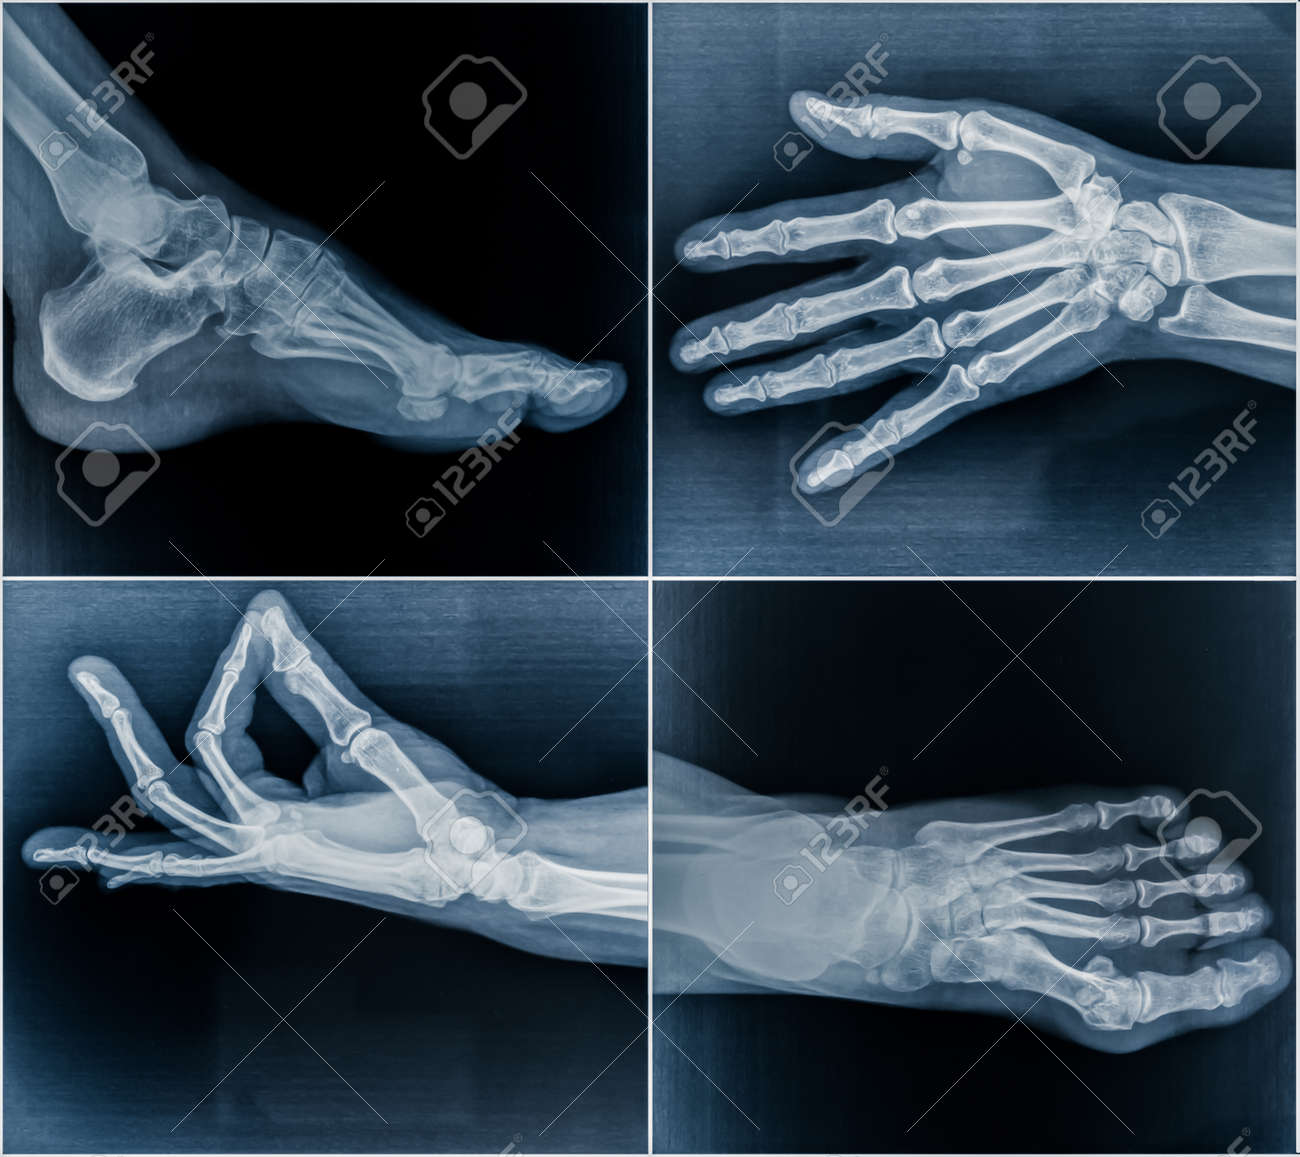 50 year old woman's x-ray scans from hands and feet - 51679855